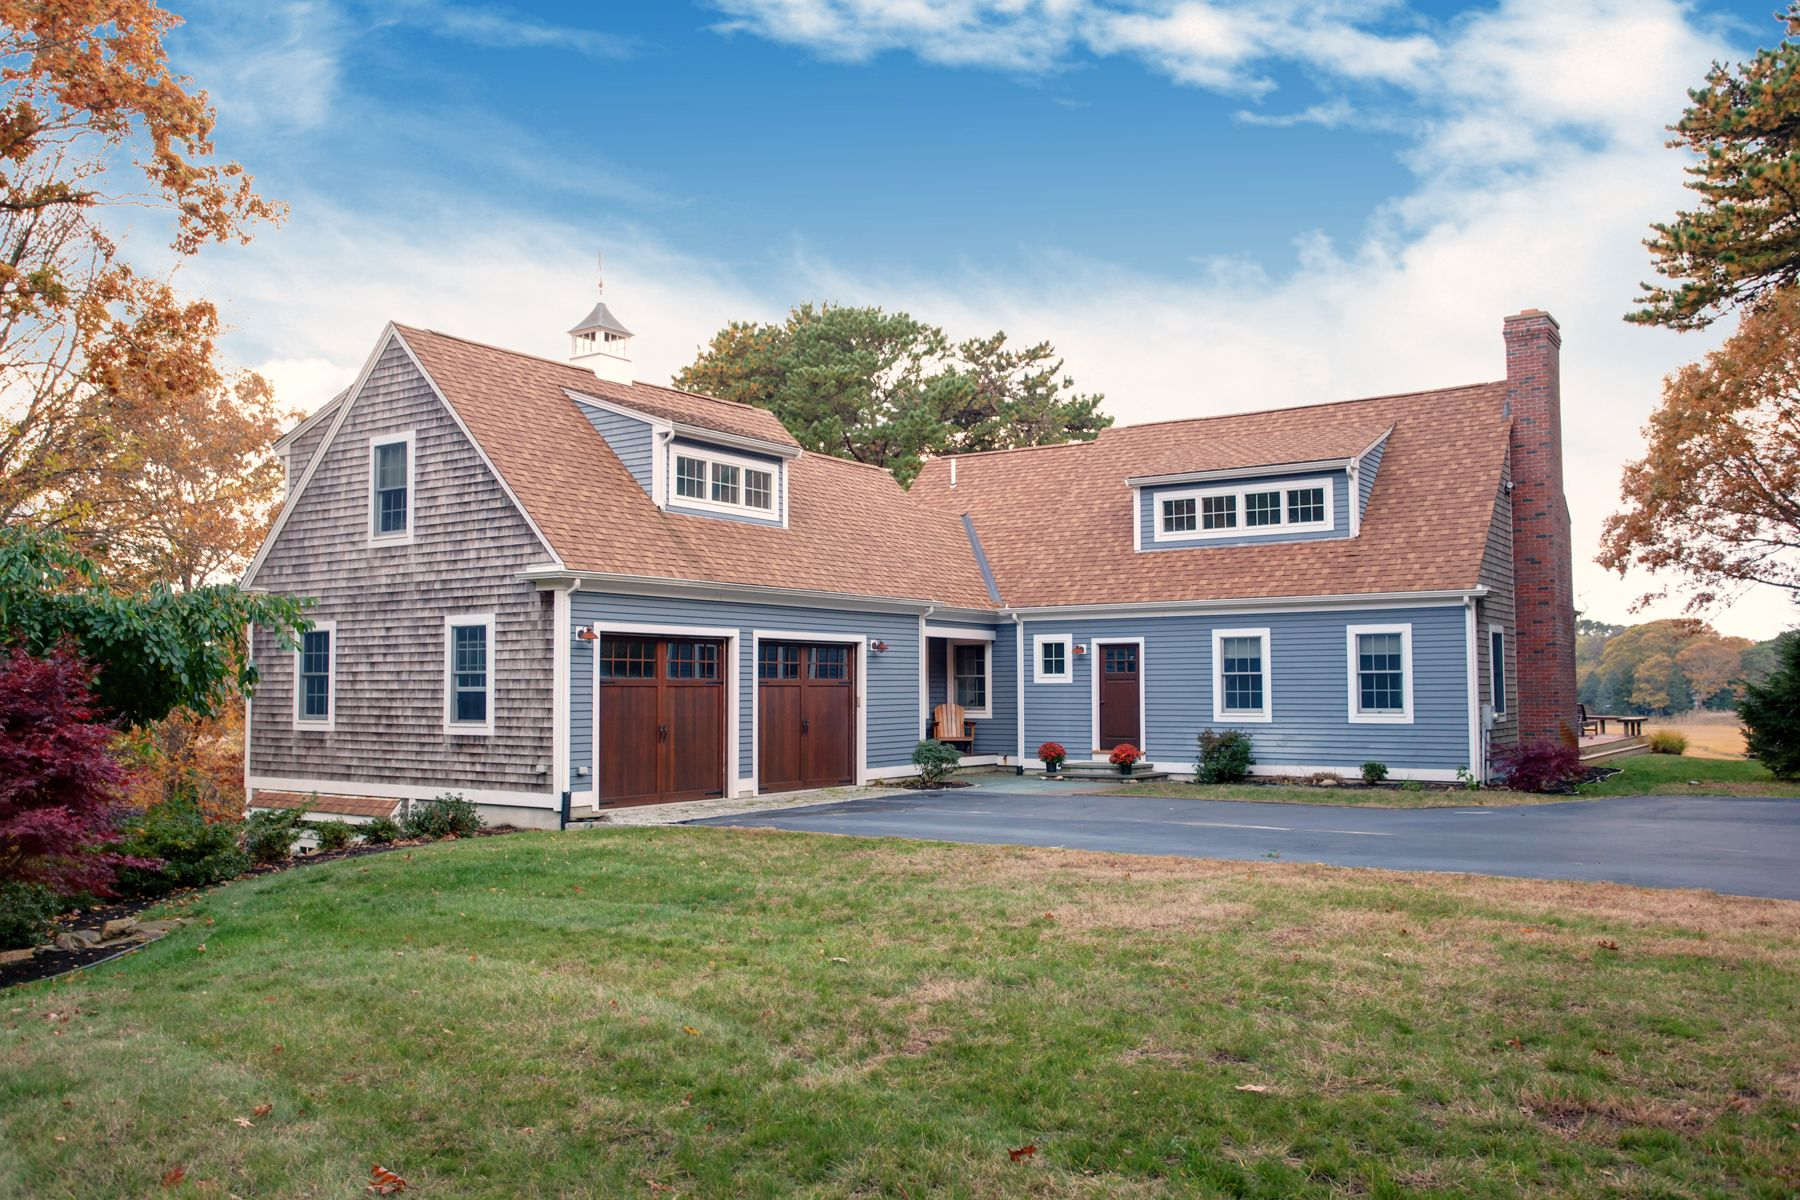 Single Family Home for Active at 11 Fort Hill Road East Sandwich, Massachusetts 02537 United States